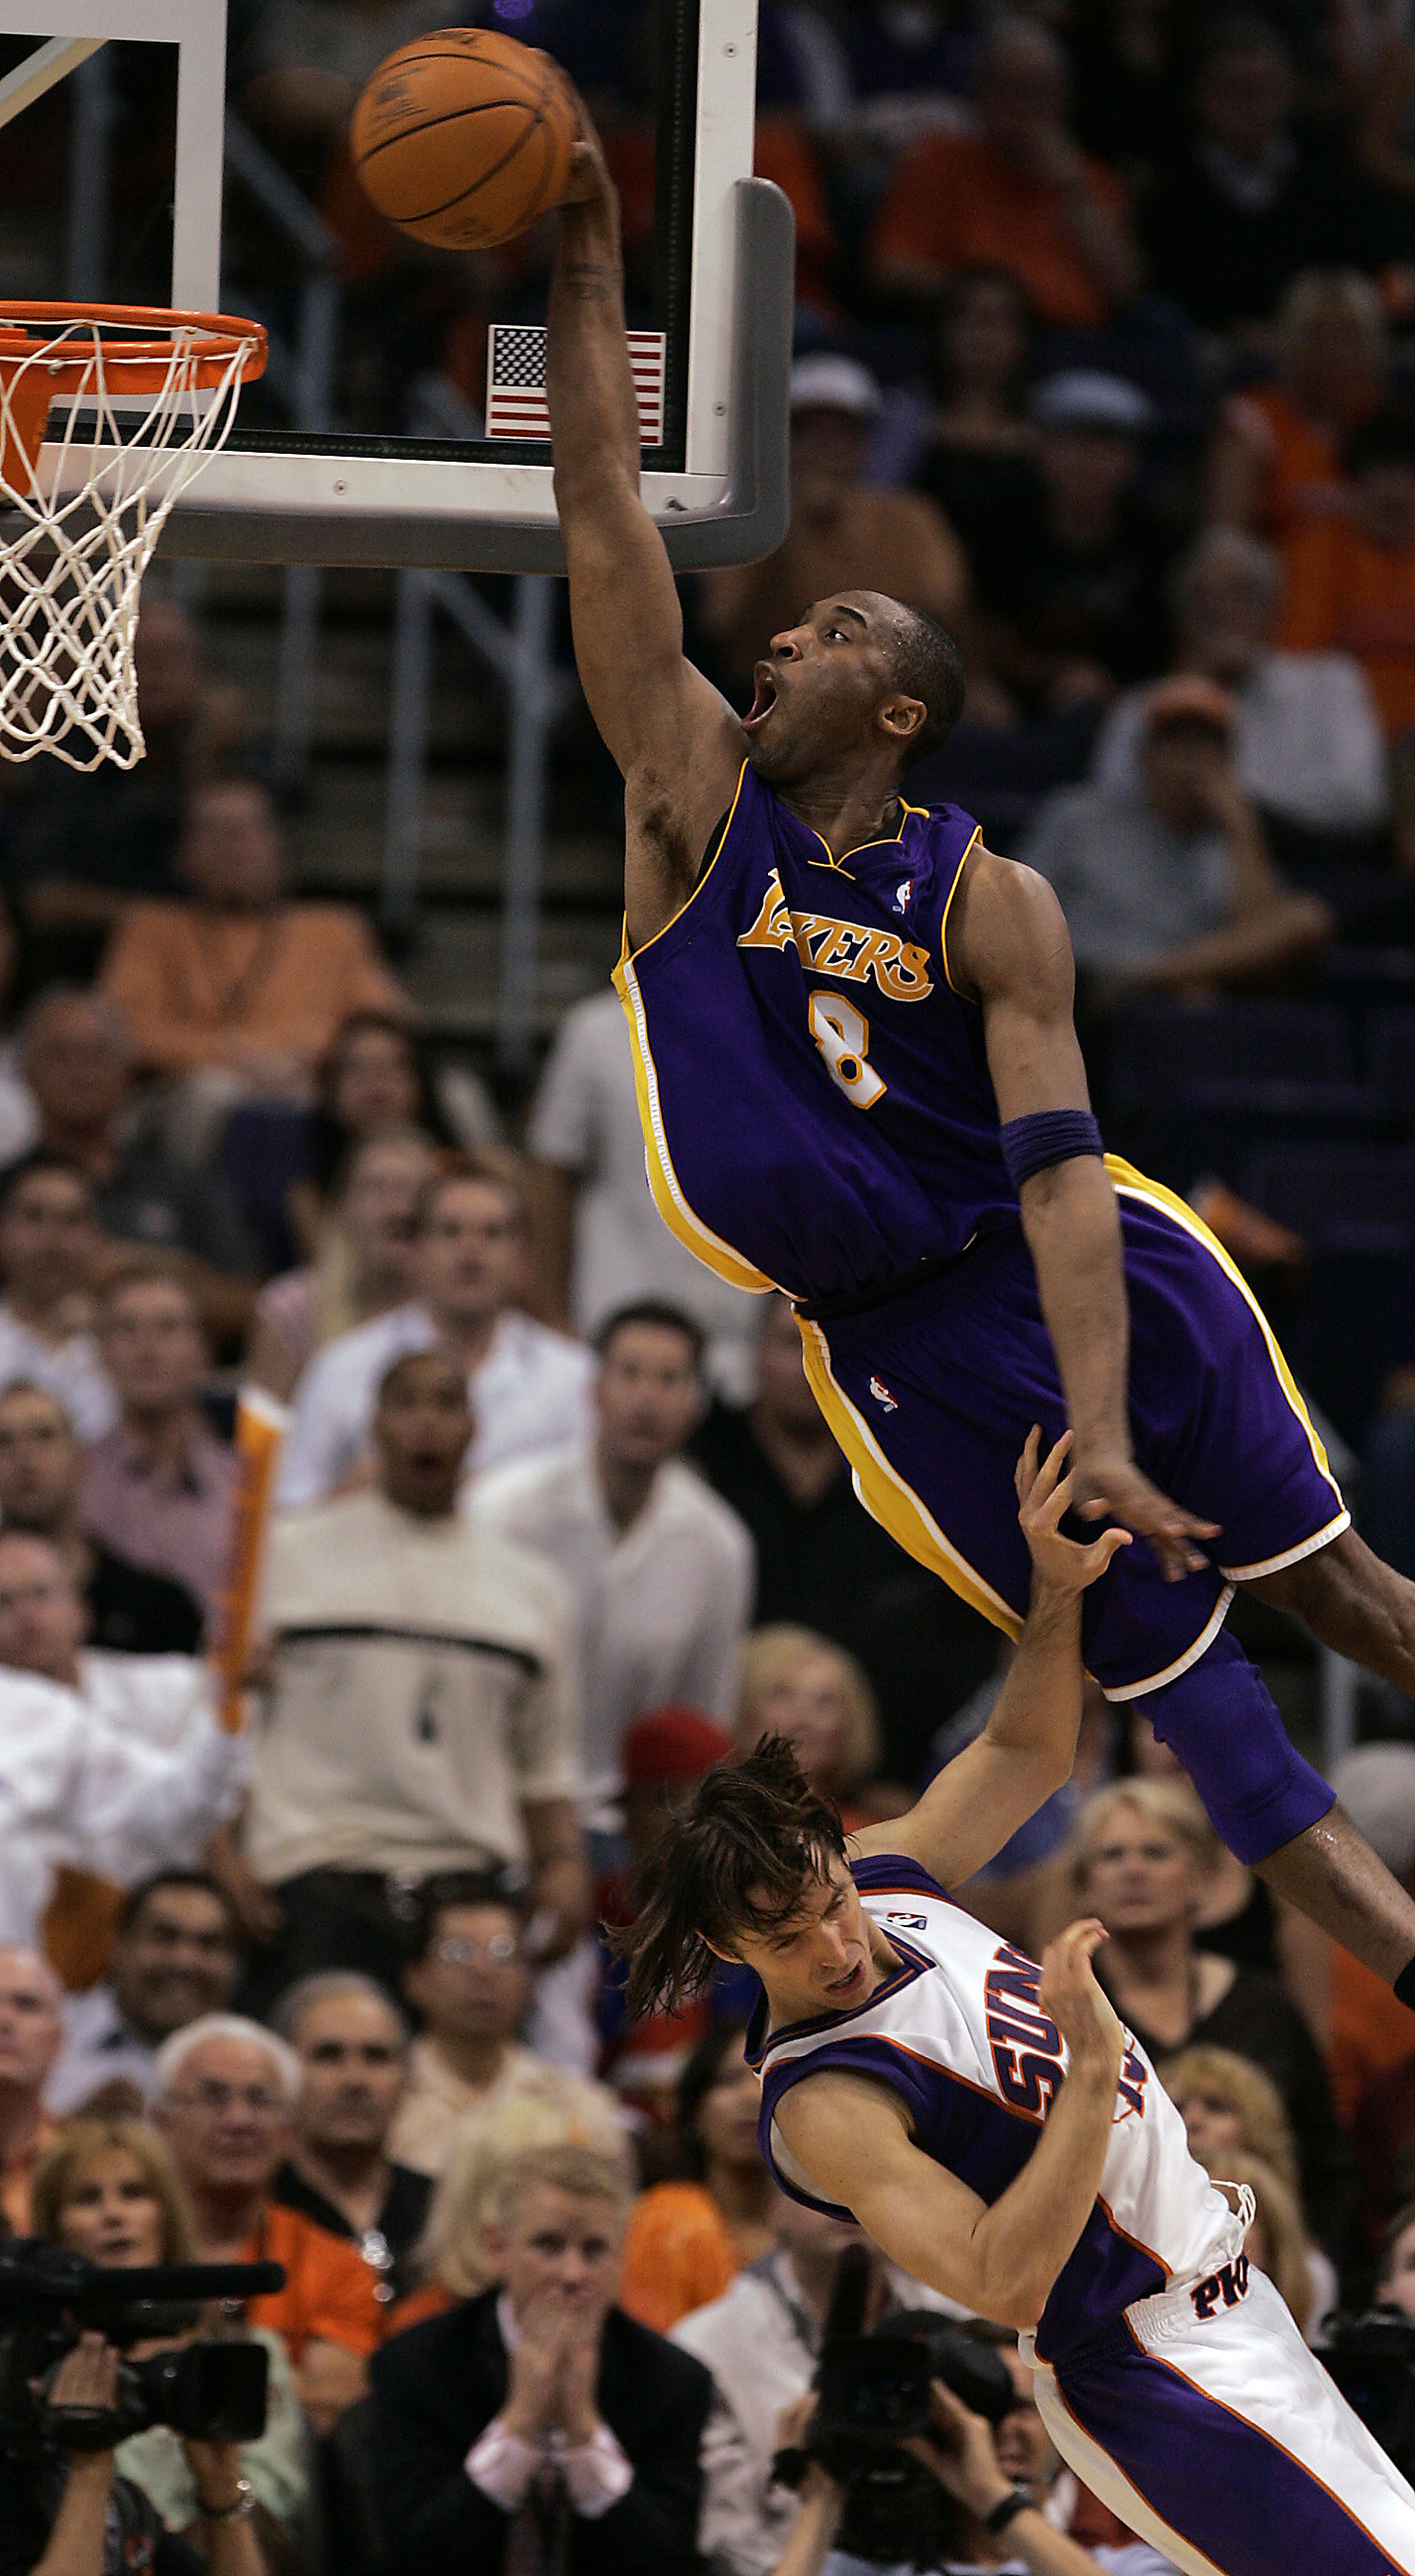 984cbb841f9 Kobe Bryant goes for the dunk over the Phoenix Suns' Steve Nash in the  fourth quarter with emphasis in game two of the NBA Western Conference  quarterfinals ...